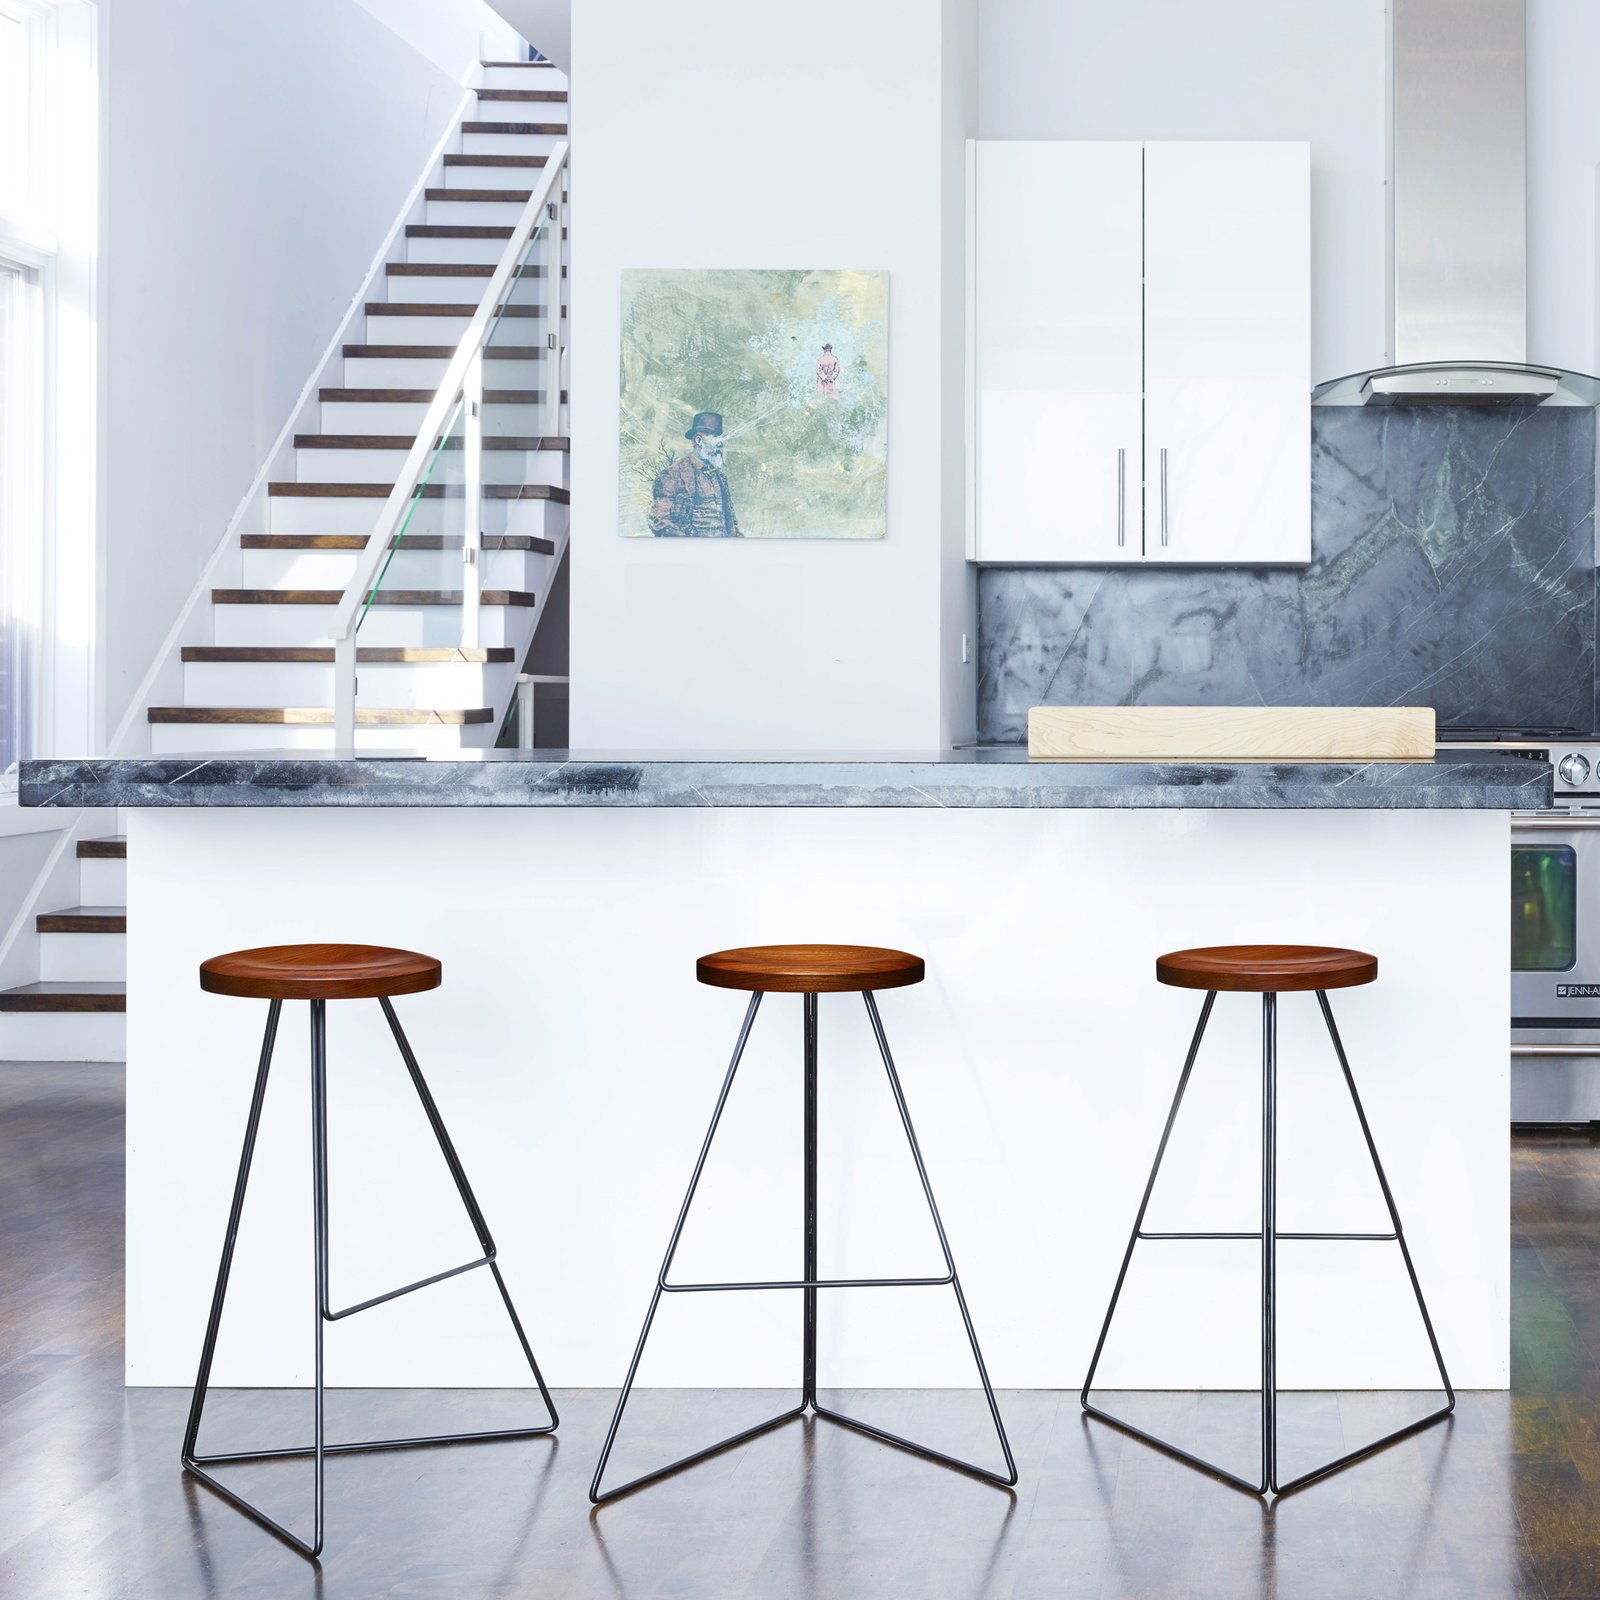 First released in 2010, the Coleman Counter Stool was awarded a Best Furniture Award from the 2015 Dwell on Design Awards. This stool has a black powder-coated base and locally sourced walnut wood seat.  Greta de Parry's Favorites from This Just In at the Dwell Store: Greta de Parry's Coleman Series